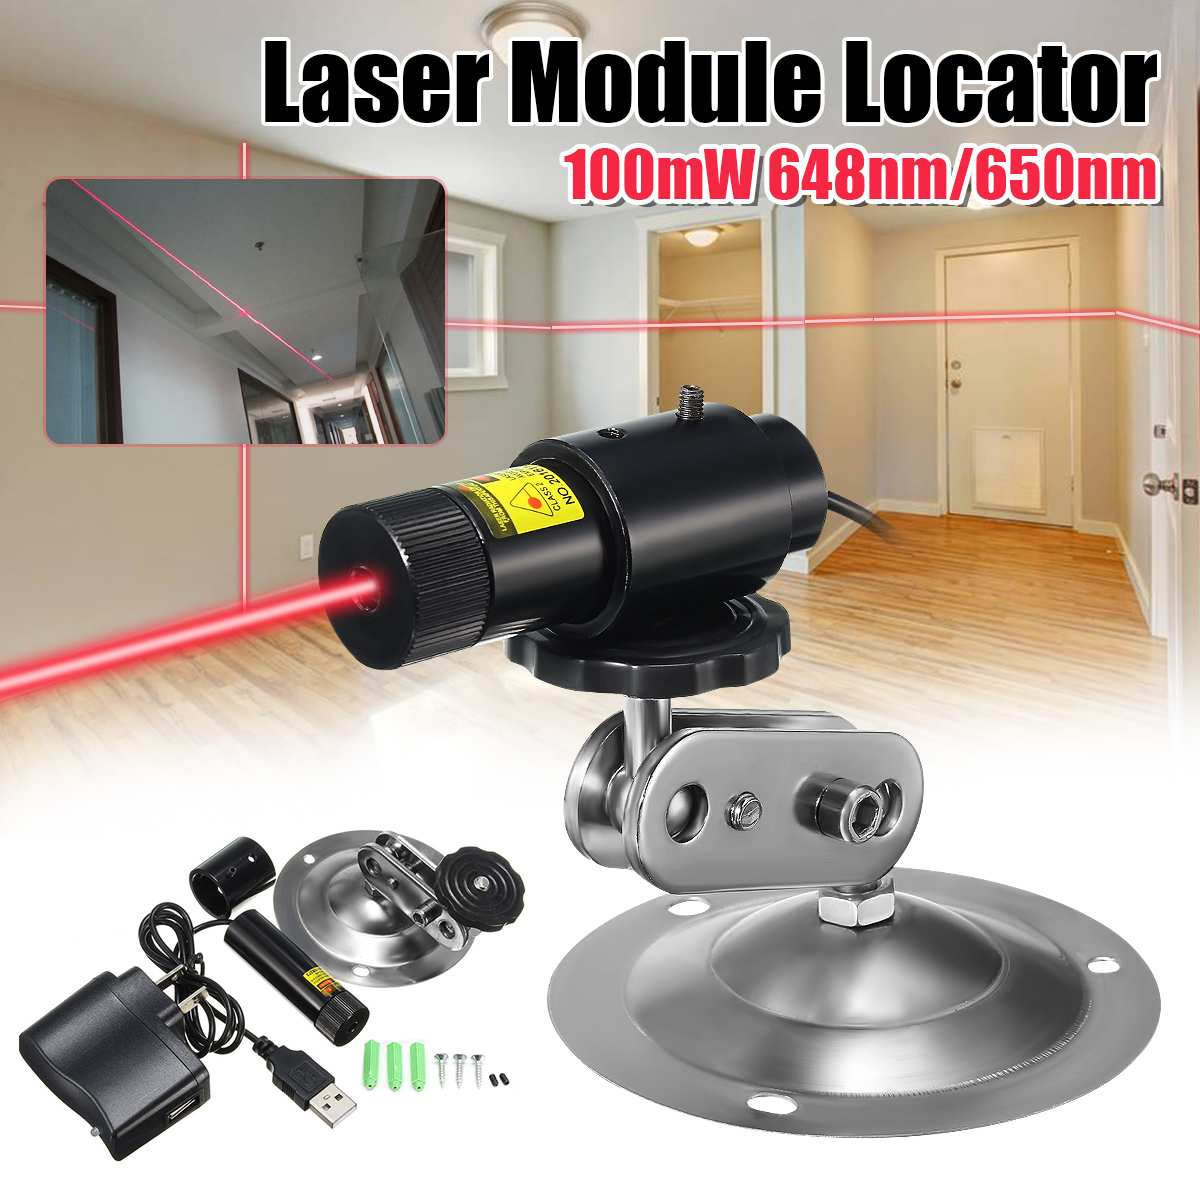 650nm 100mW Red Laser Line Module Locator For Cutting Machine + Adapter & Mount  Industrial Woodworking Stone